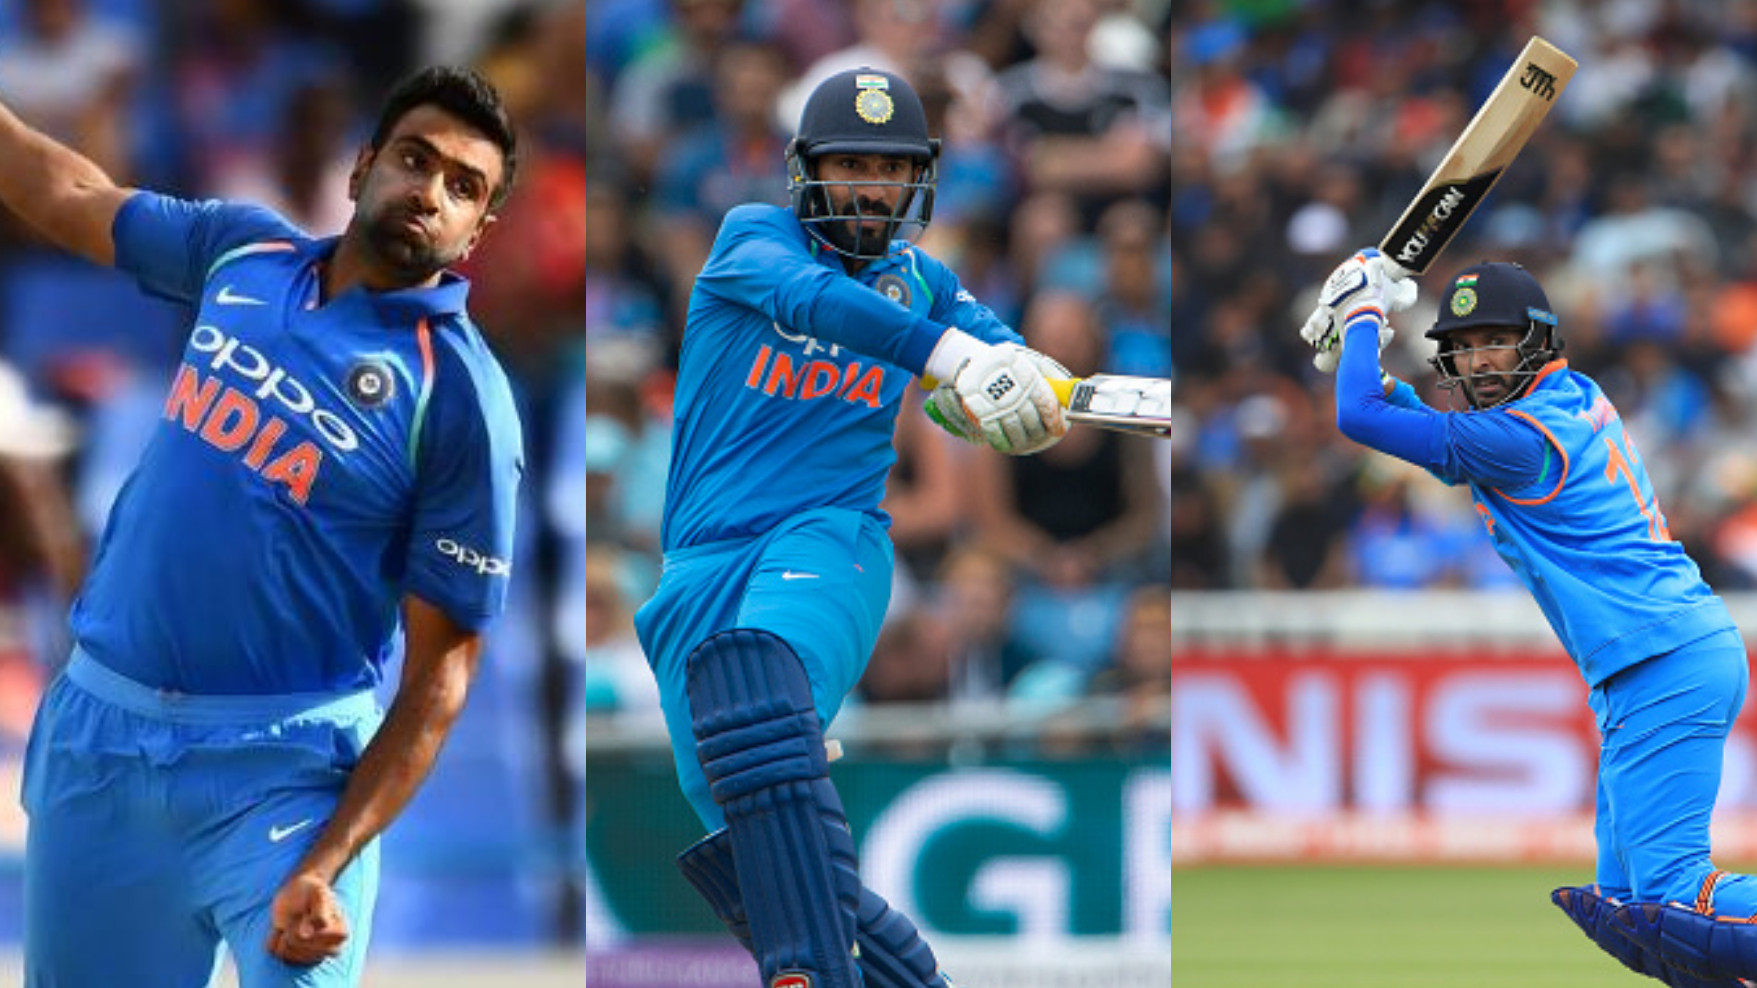 5 Indian players whose 2019 World Cup dream might be over